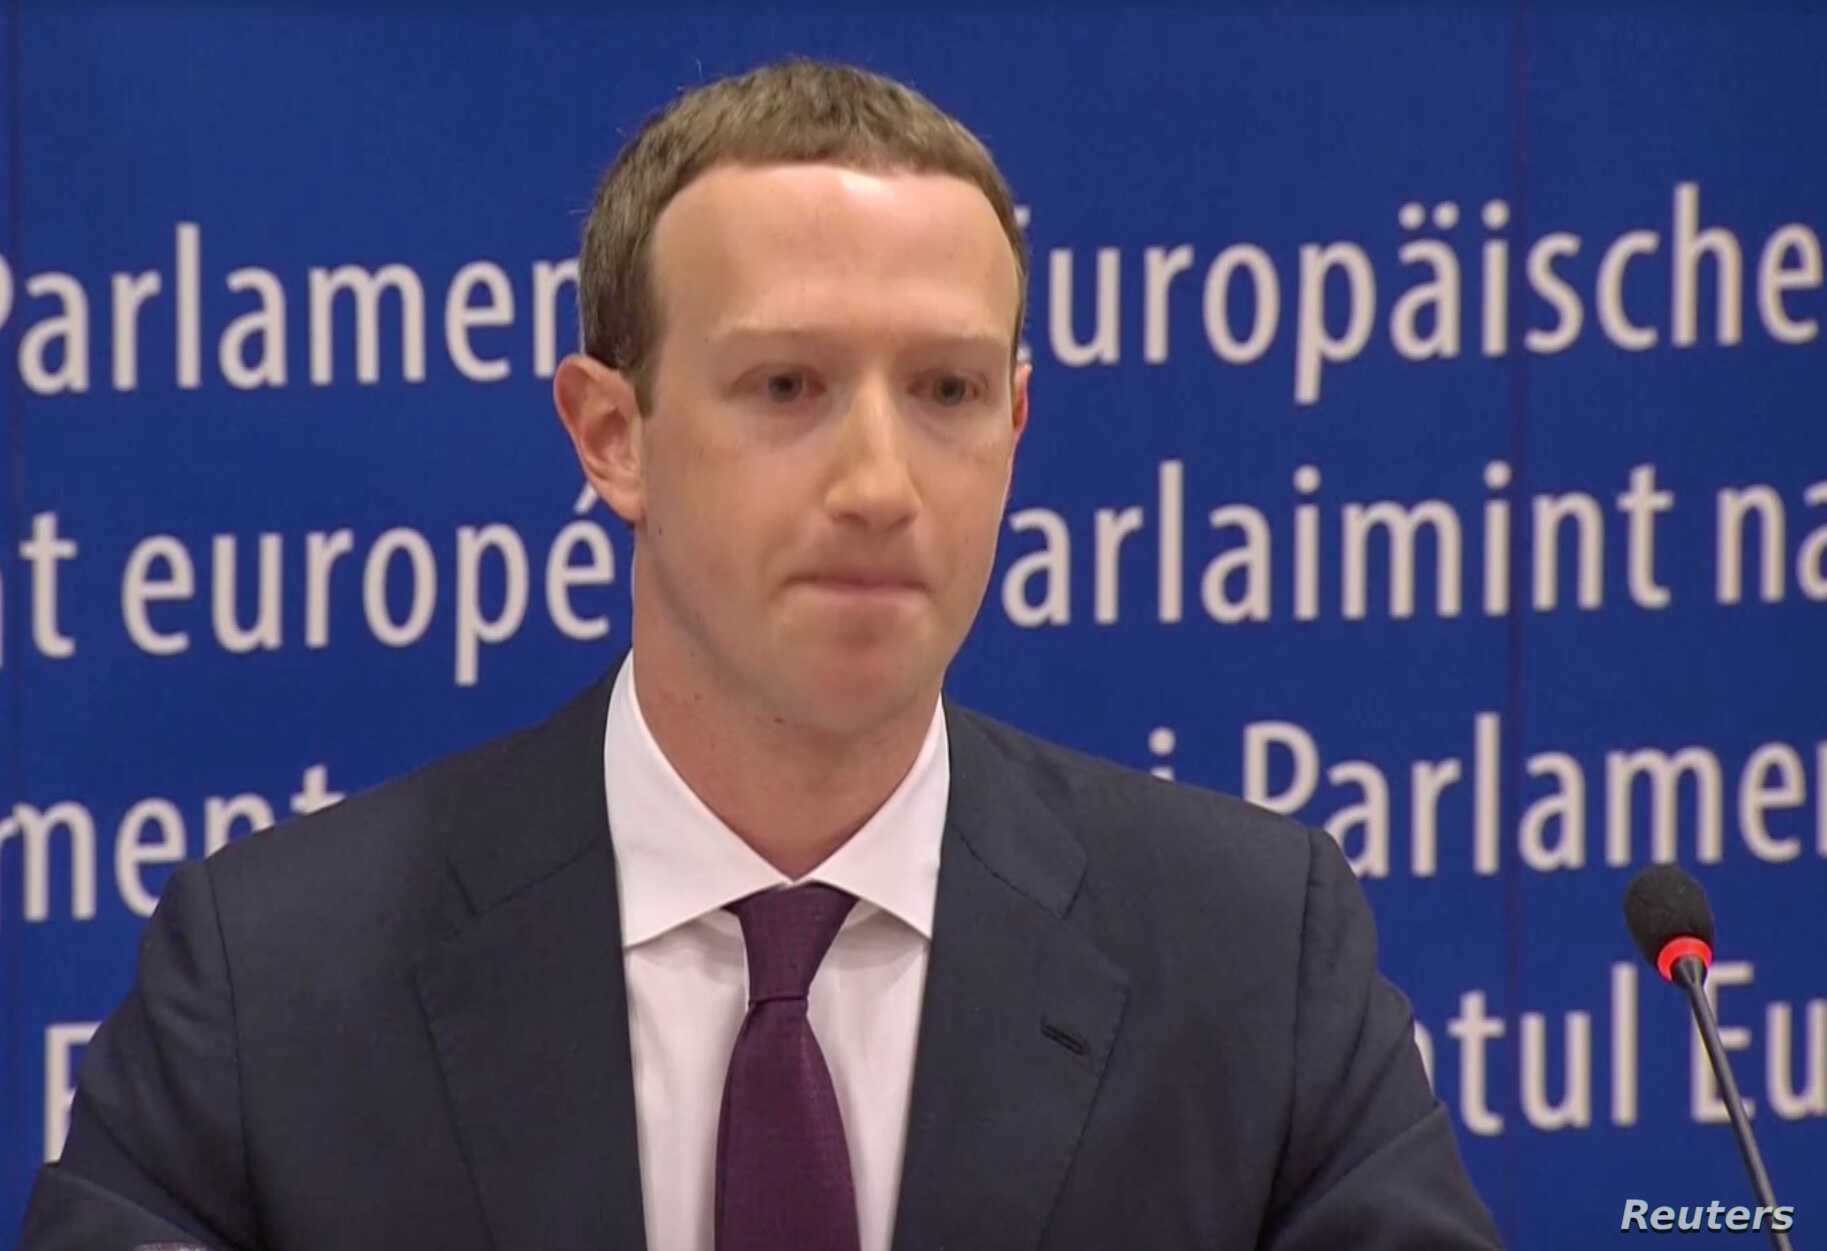 Facebook's CEO Mark Zuckerberg answers questions about the improper use of millions of users' data by a political consultancy, at the European Parliament in Brussels, Belgium, in this still image taken from Reuters TV, May 22, 2018.